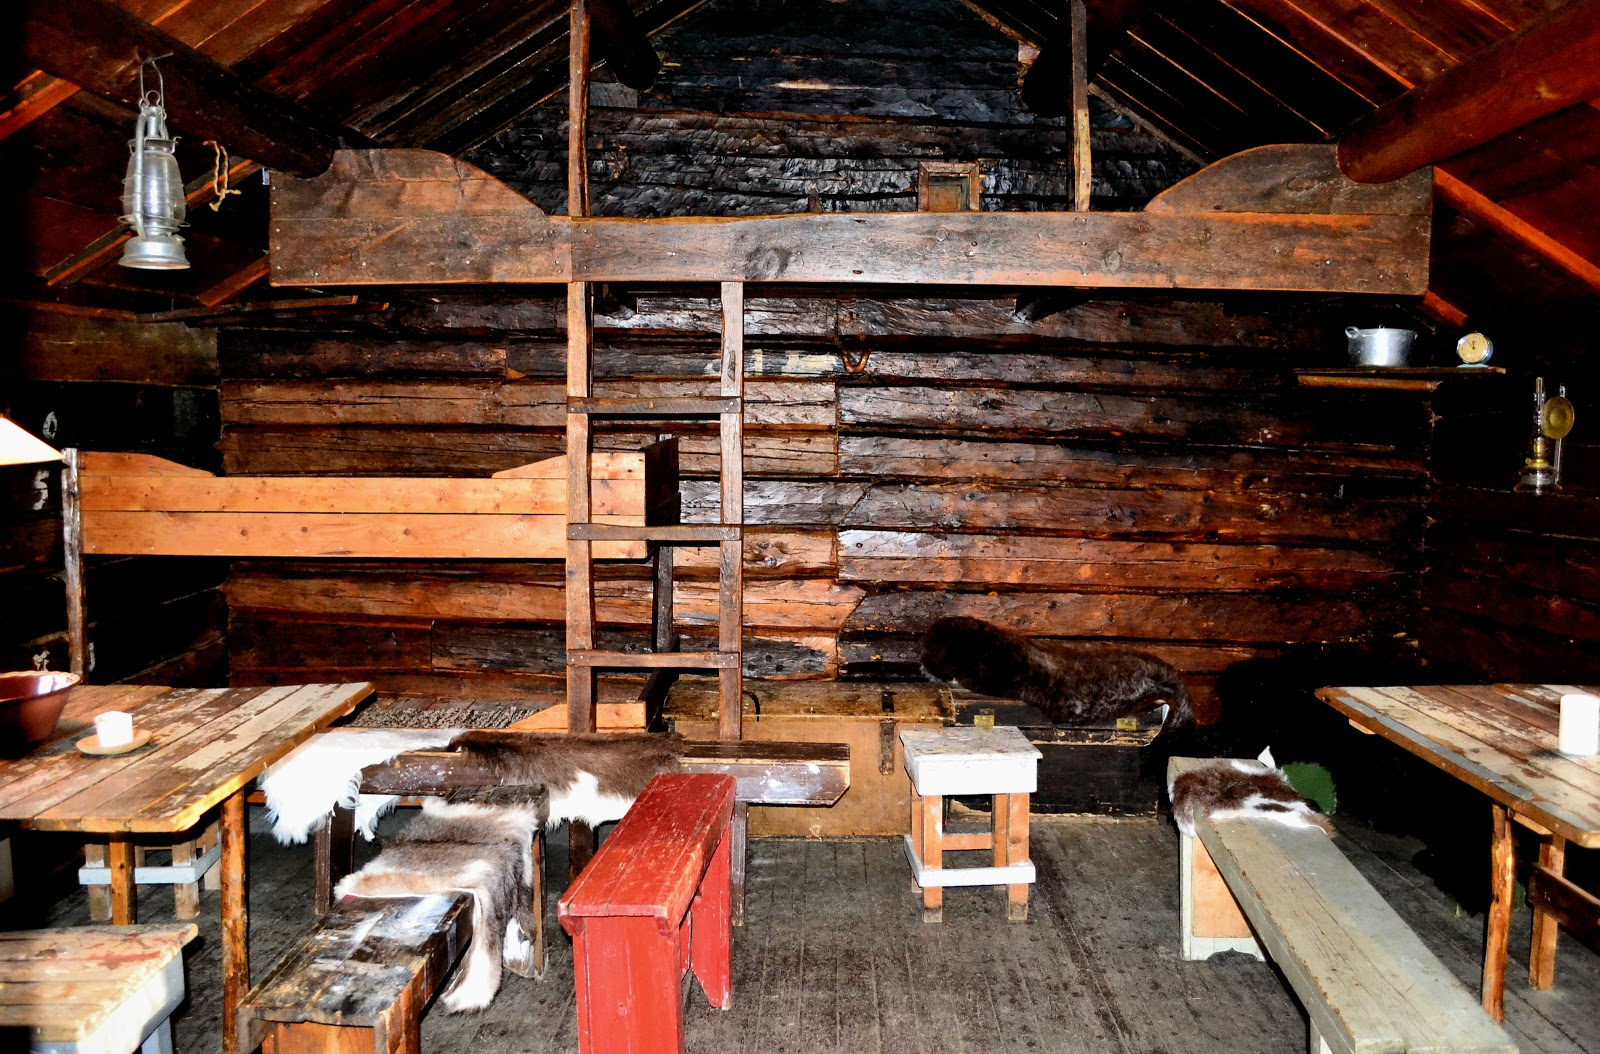 Along the back wall were bunk beds that could sleep up to 12 men.